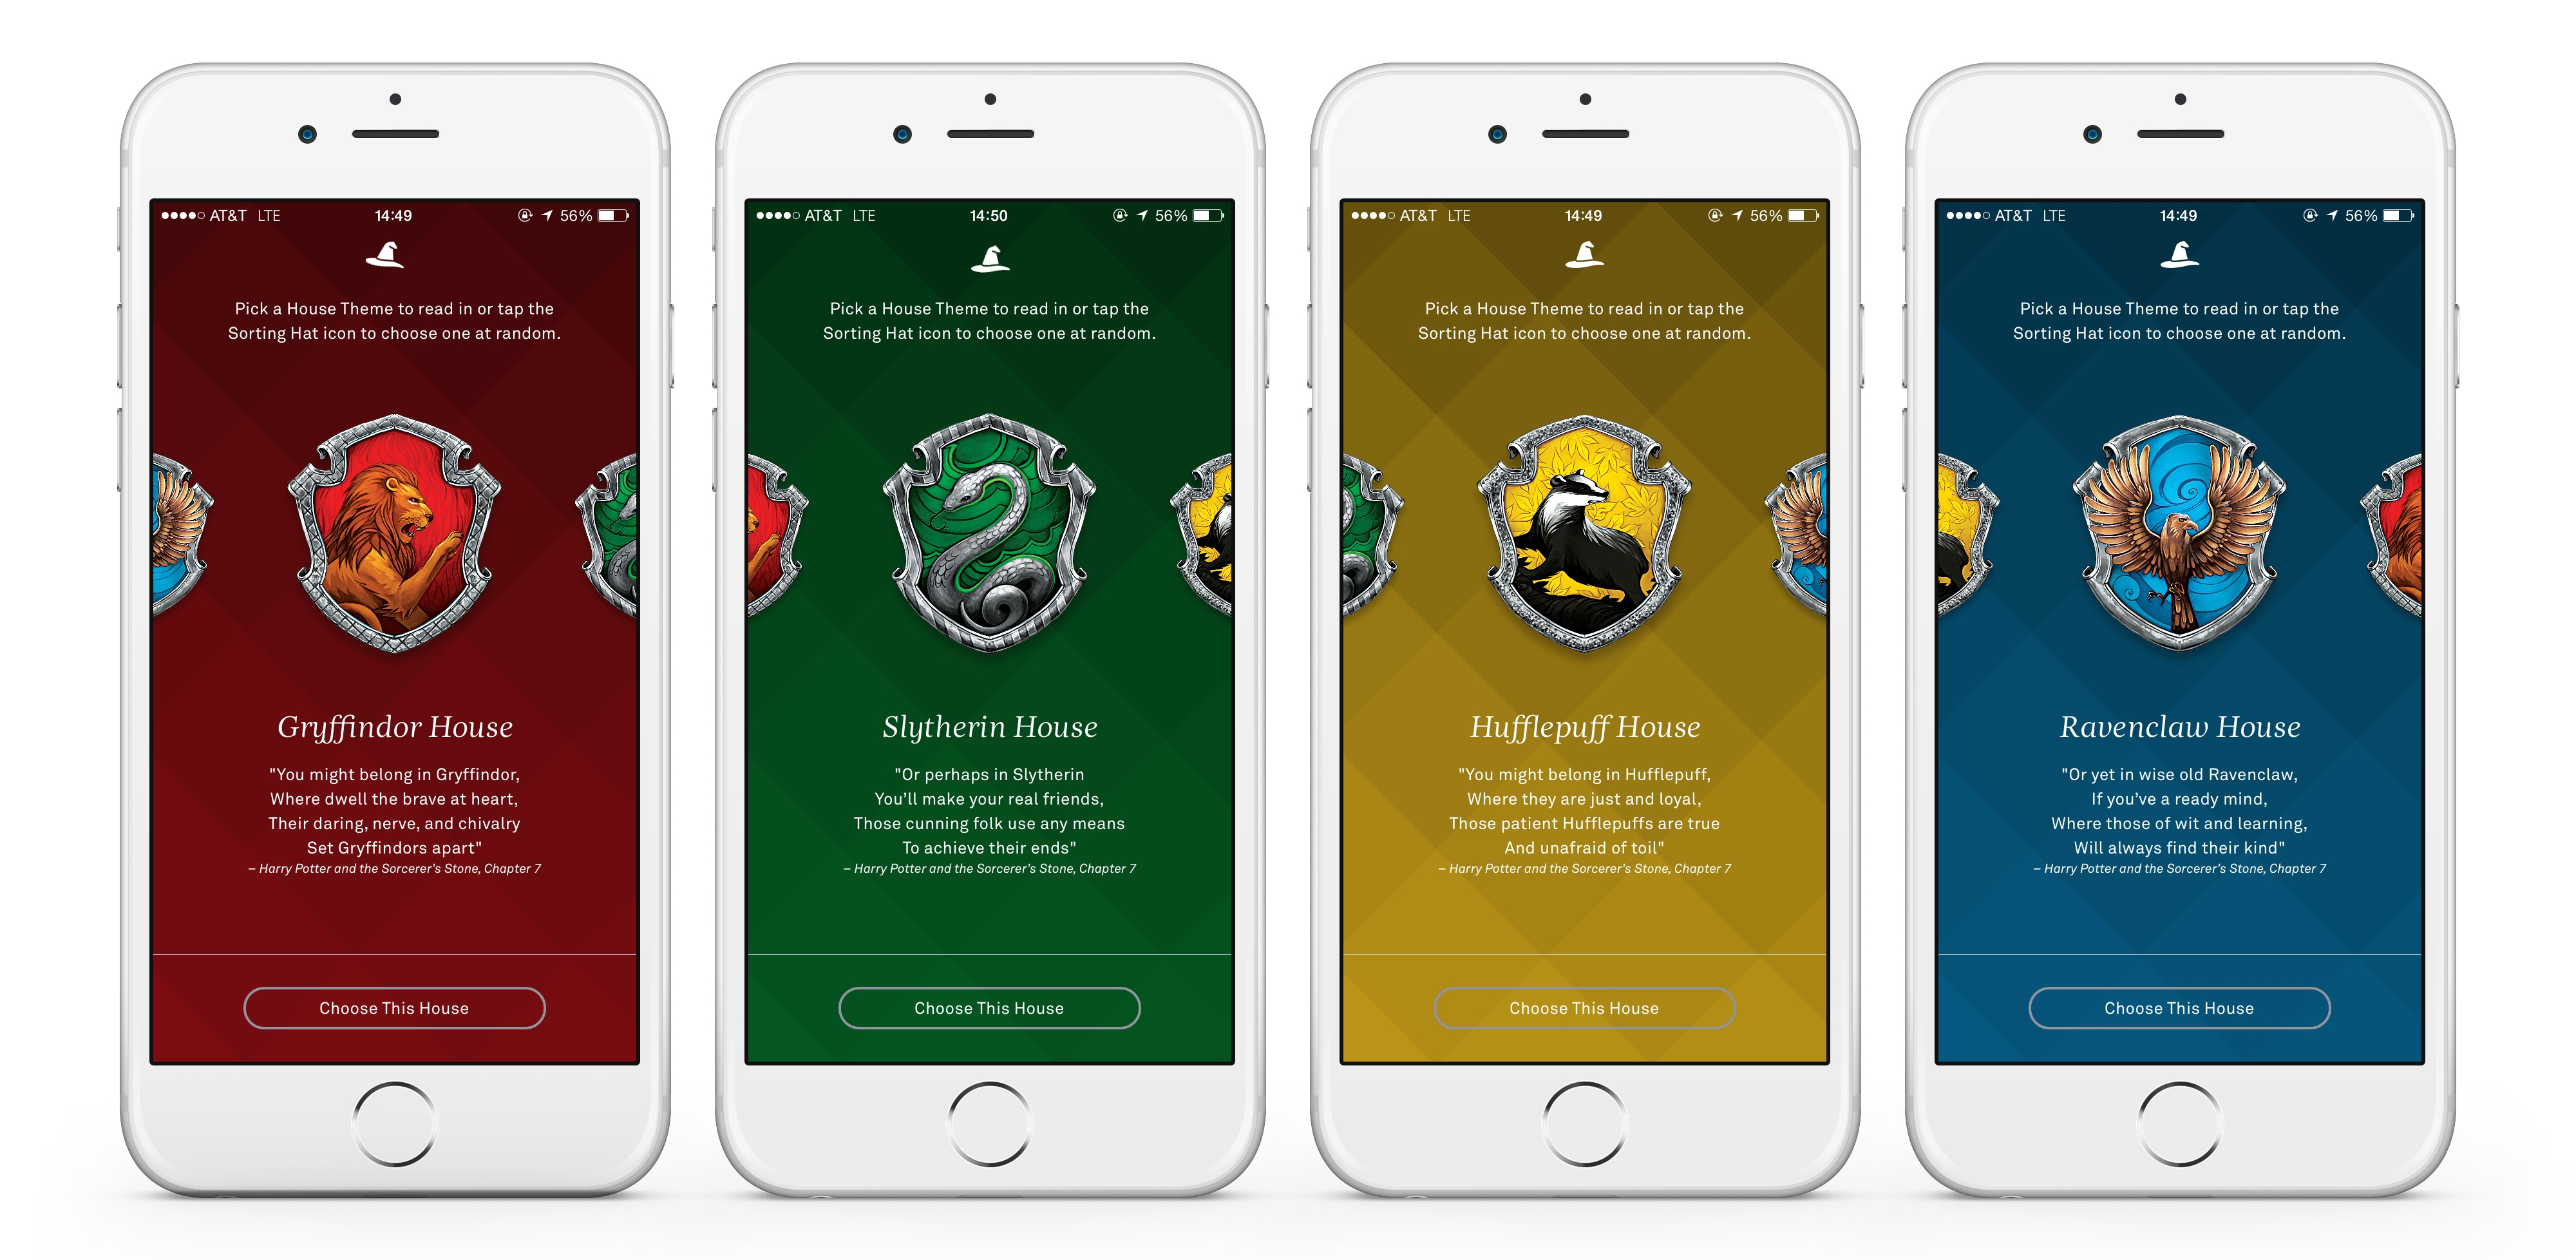 Get sorted to your favorite Hogwarts House when you read a Harry Potter book on Oyster.